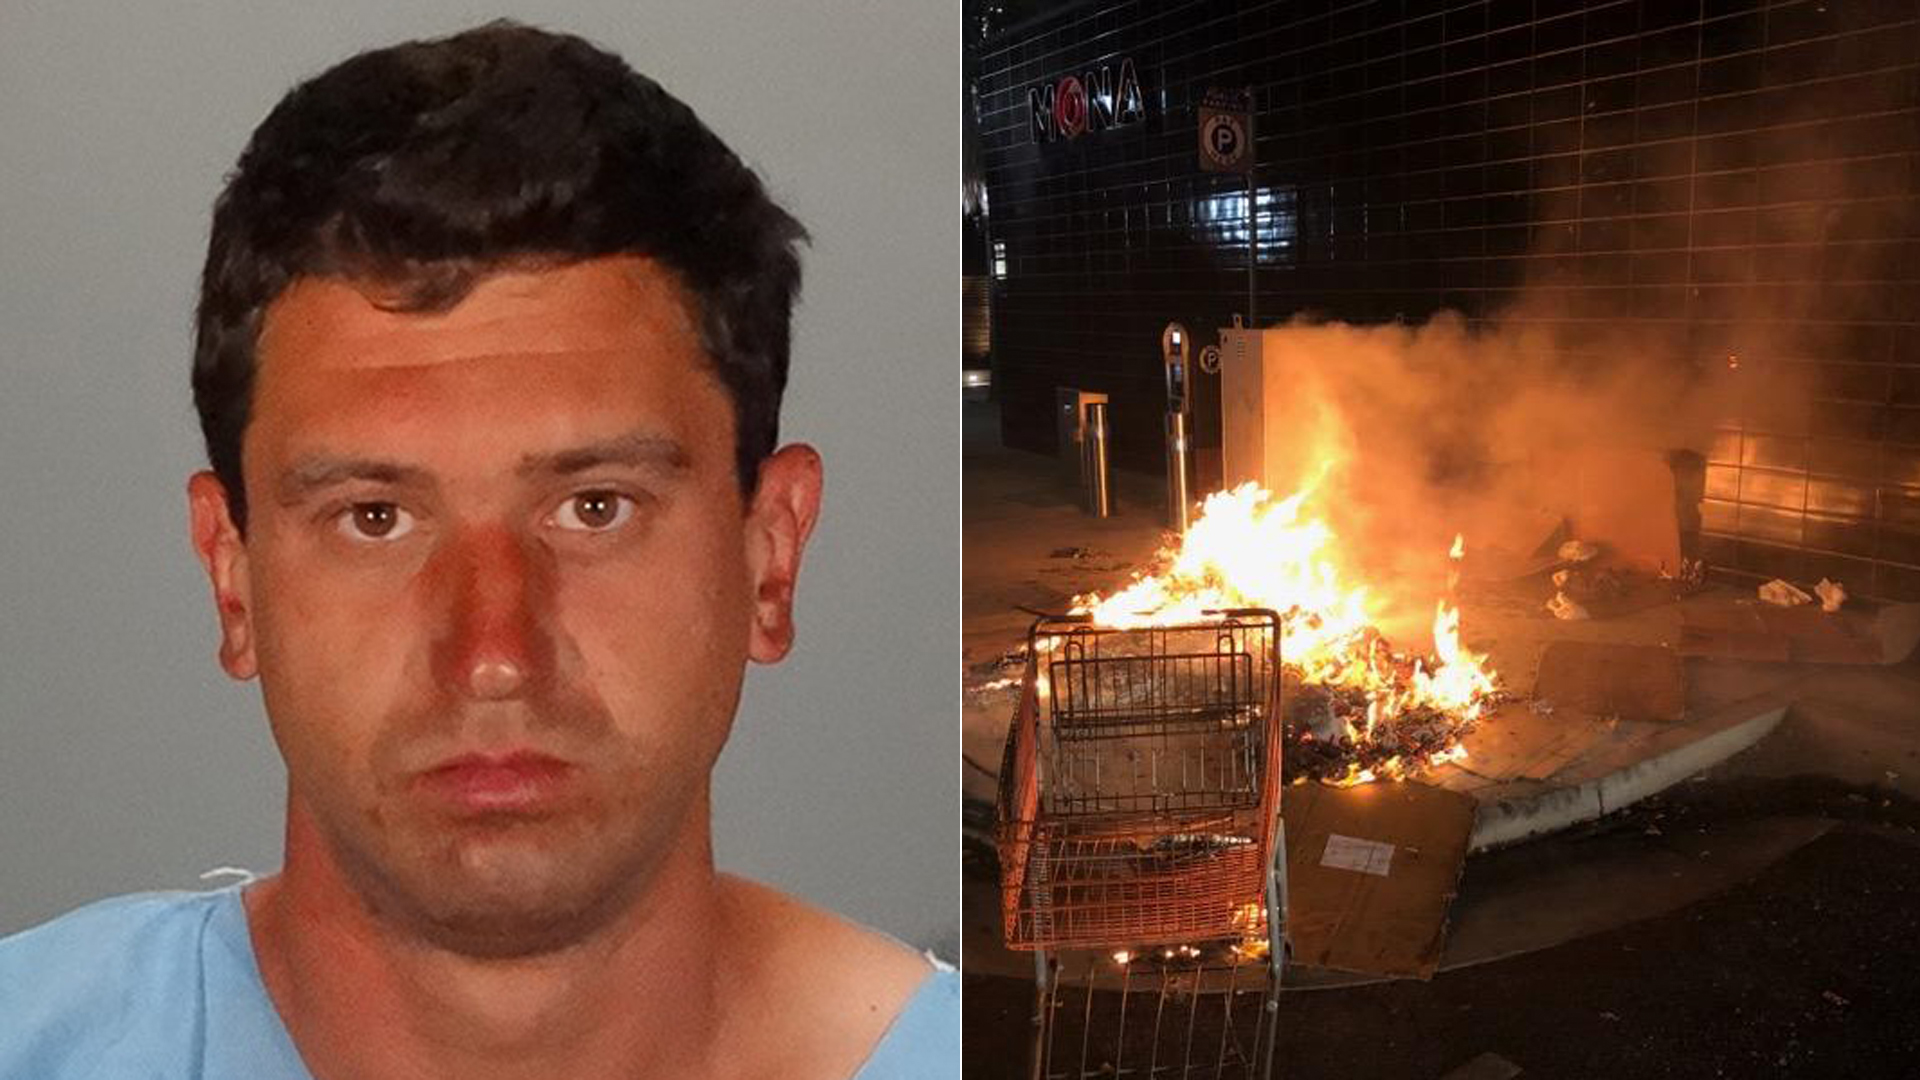 Richard Smallets is shown in a photo released by the Glendale Police Department on Sept. 24, 2019 along with a photo of the fire he allegedly started.